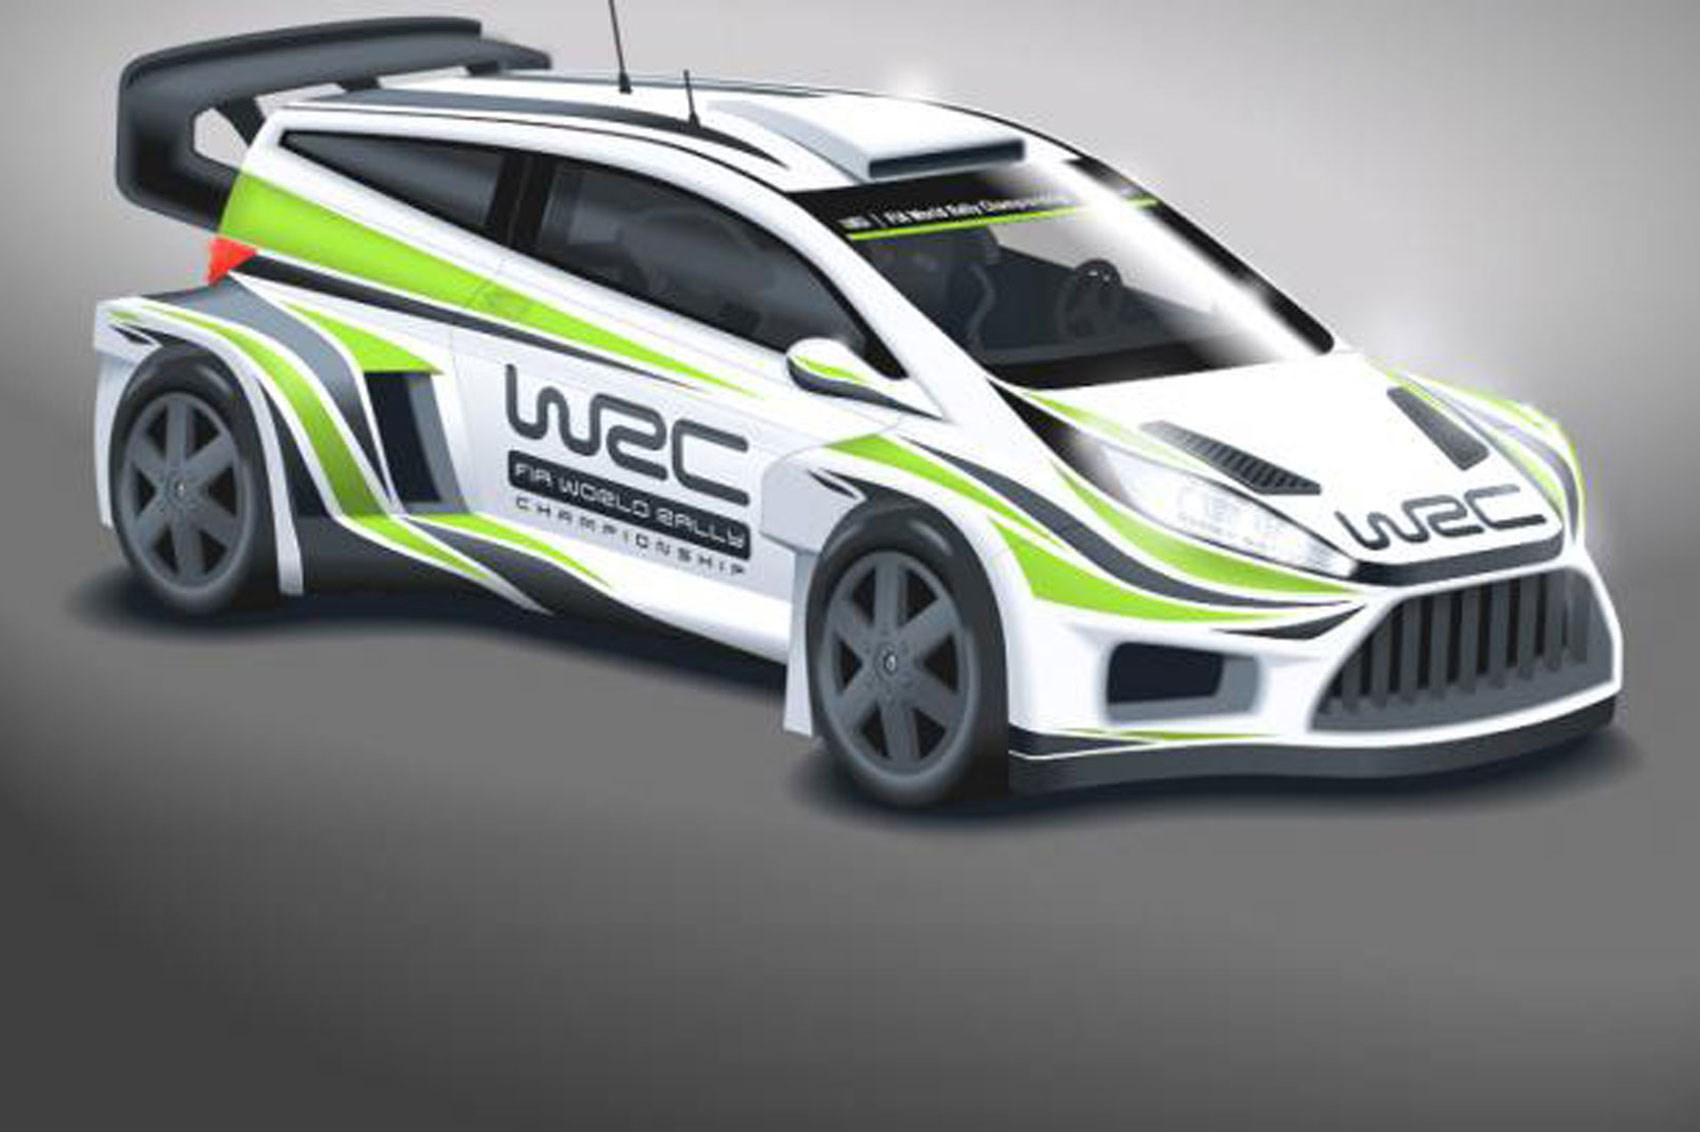 Ultrablogus  Wonderful Wild New Look For Wrc Cars In  By Car Magazine With Exciting Wrc Cars Will Get Wider Bodies Bigger Wings And More Power For  With Extraordinary  Camaro Z Interior Also Citroen Saxo Interior In Addition Camaro Interior Trim And Cadenza Interior As Well As Grand Wagoneer Interior Additionally Eclipse Interior From Carmagazinecouk With Ultrablogus  Exciting Wild New Look For Wrc Cars In  By Car Magazine With Extraordinary Wrc Cars Will Get Wider Bodies Bigger Wings And More Power For  And Wonderful  Camaro Z Interior Also Citroen Saxo Interior In Addition Camaro Interior Trim From Carmagazinecouk